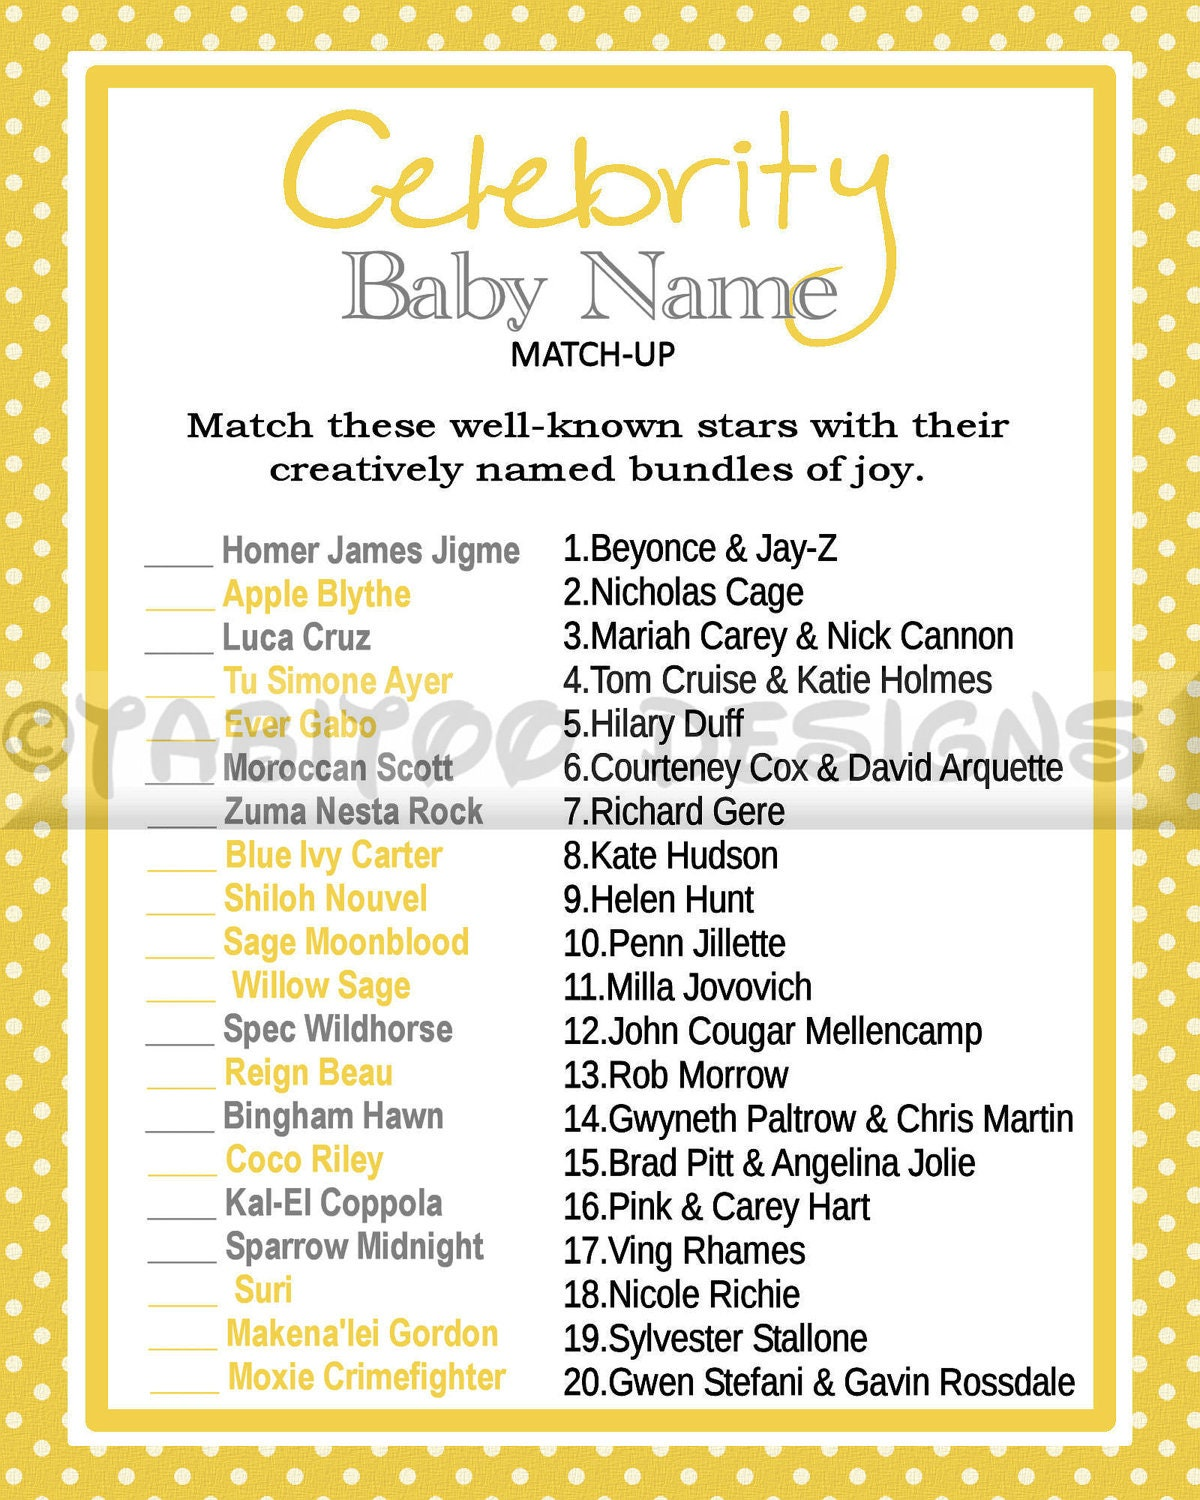 Celebrity Baby Names at BabyNames.com